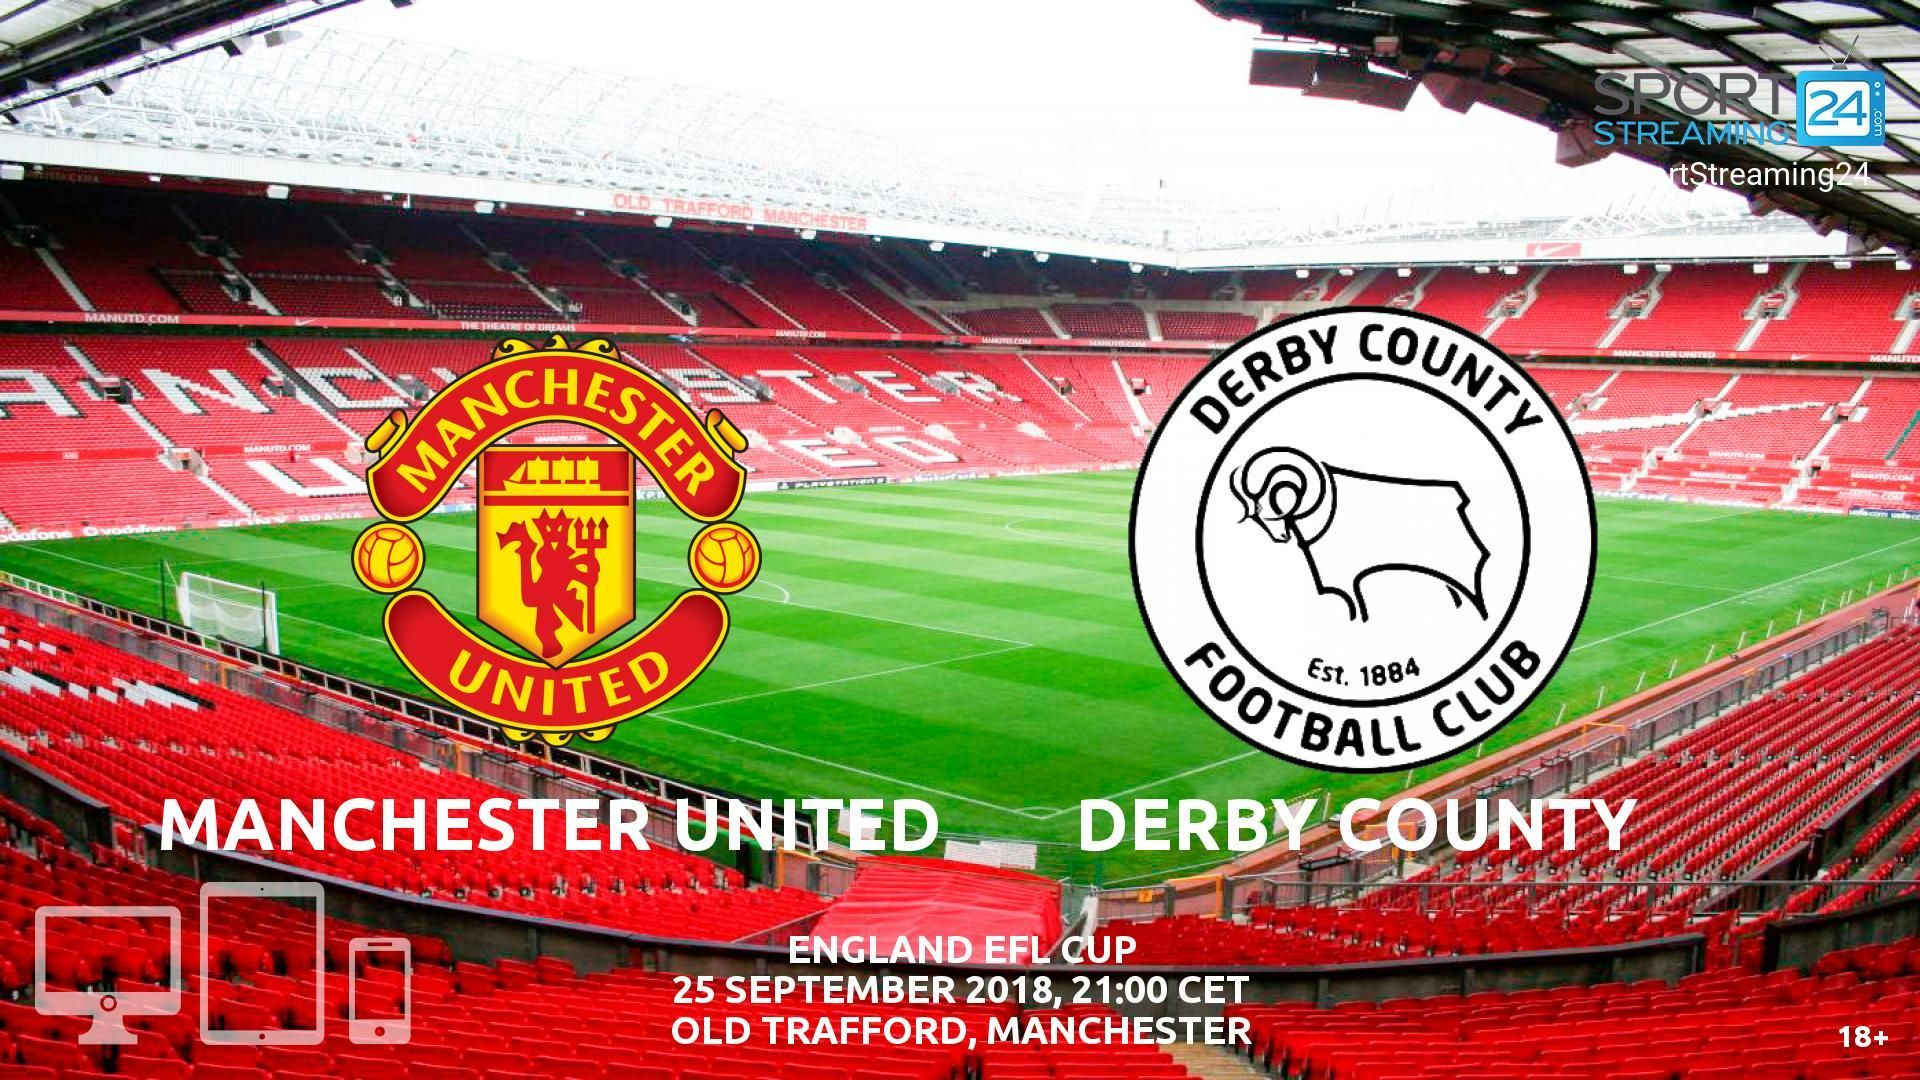 Streaming News And Match Previews Sportstreaming24 Manchester City Manchester United Manchester Derby